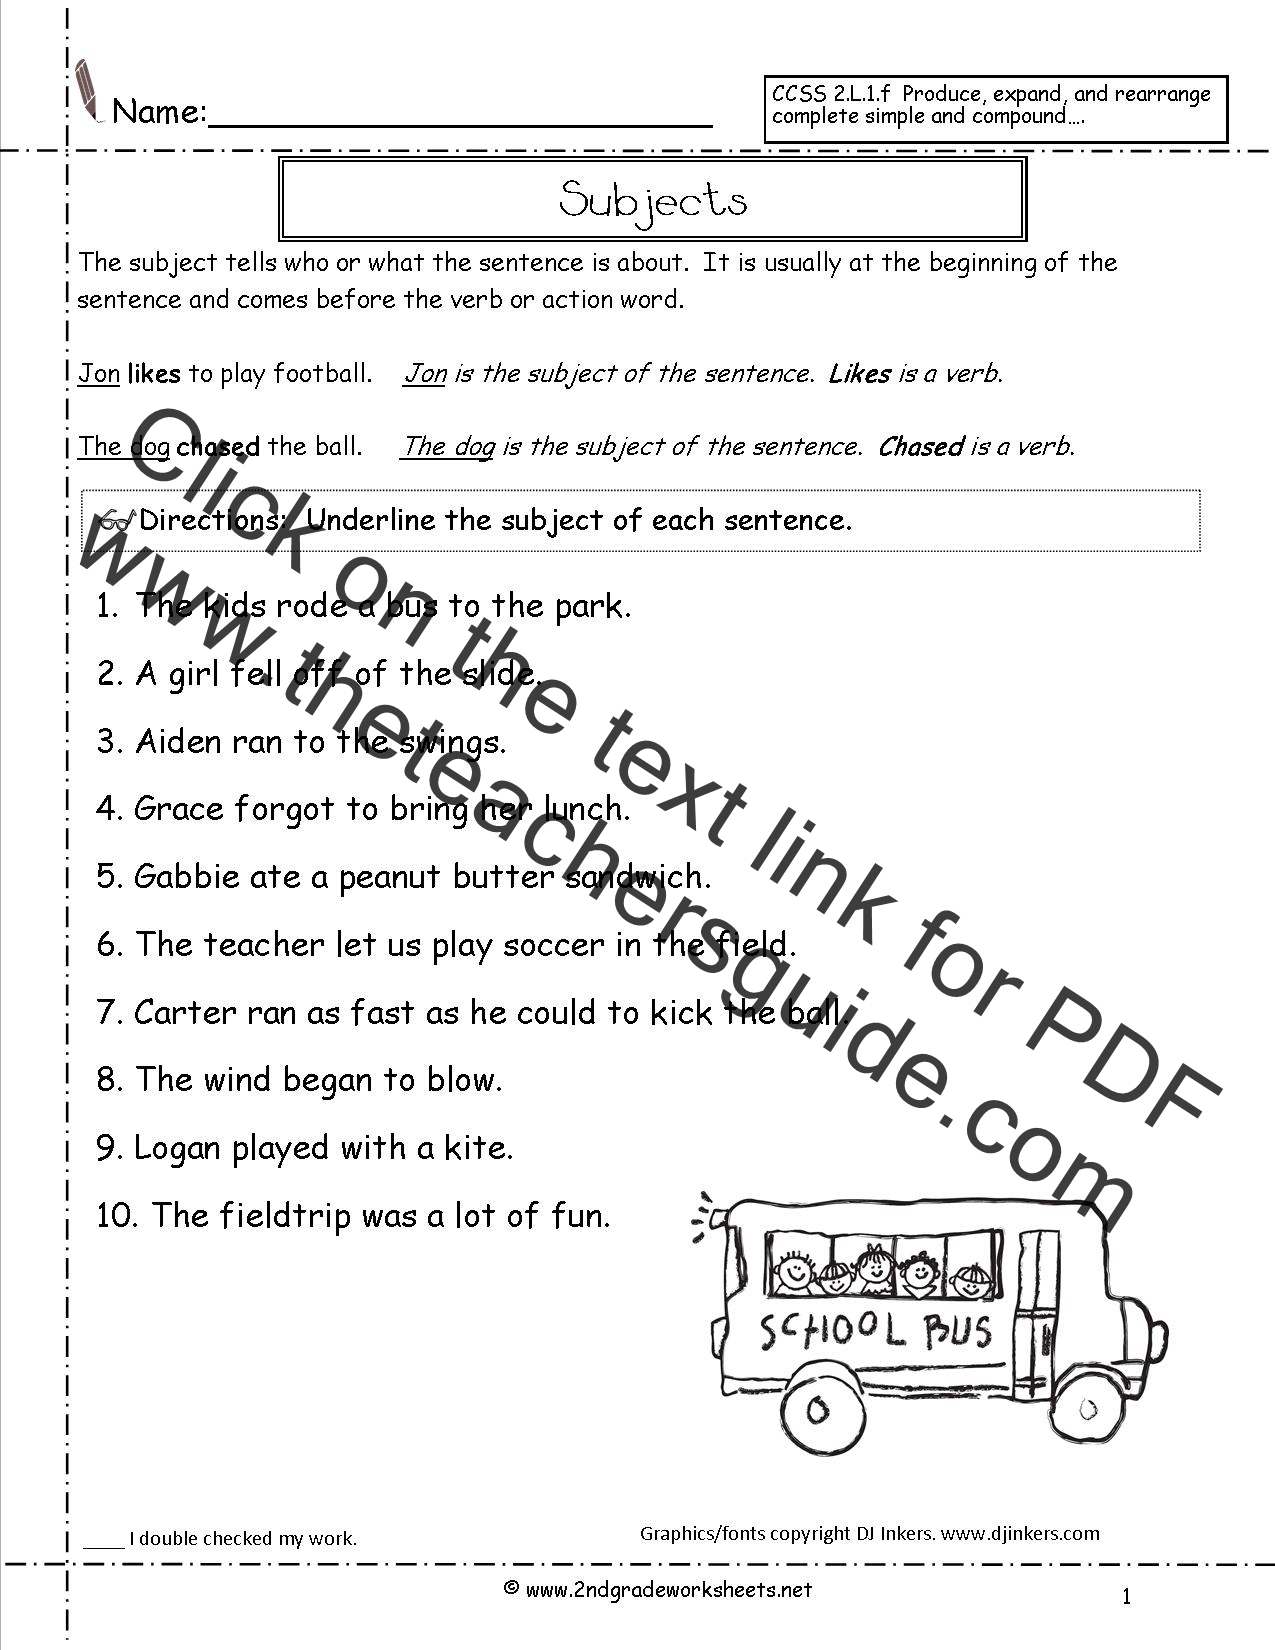 Worksheet On Types Of Sentences Grade 3